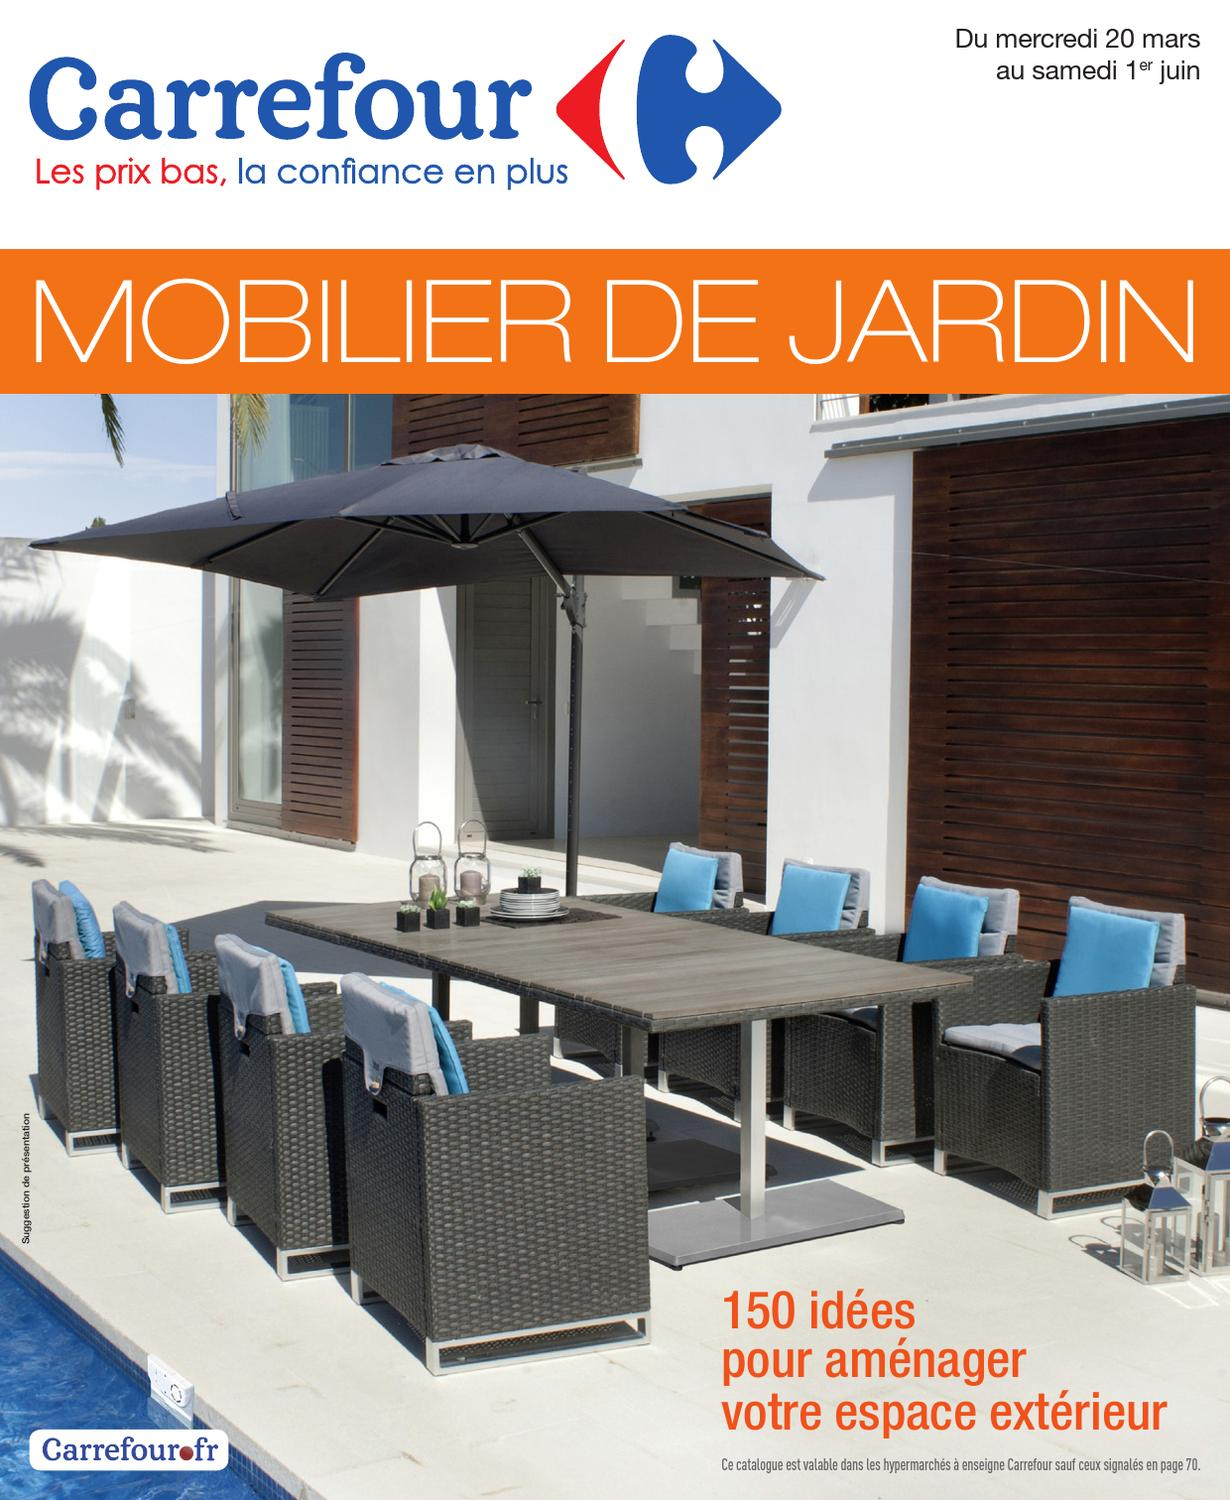 Housse De Protection Salon De Jardin Carrefour Carrefour 20 3 1 6 2013